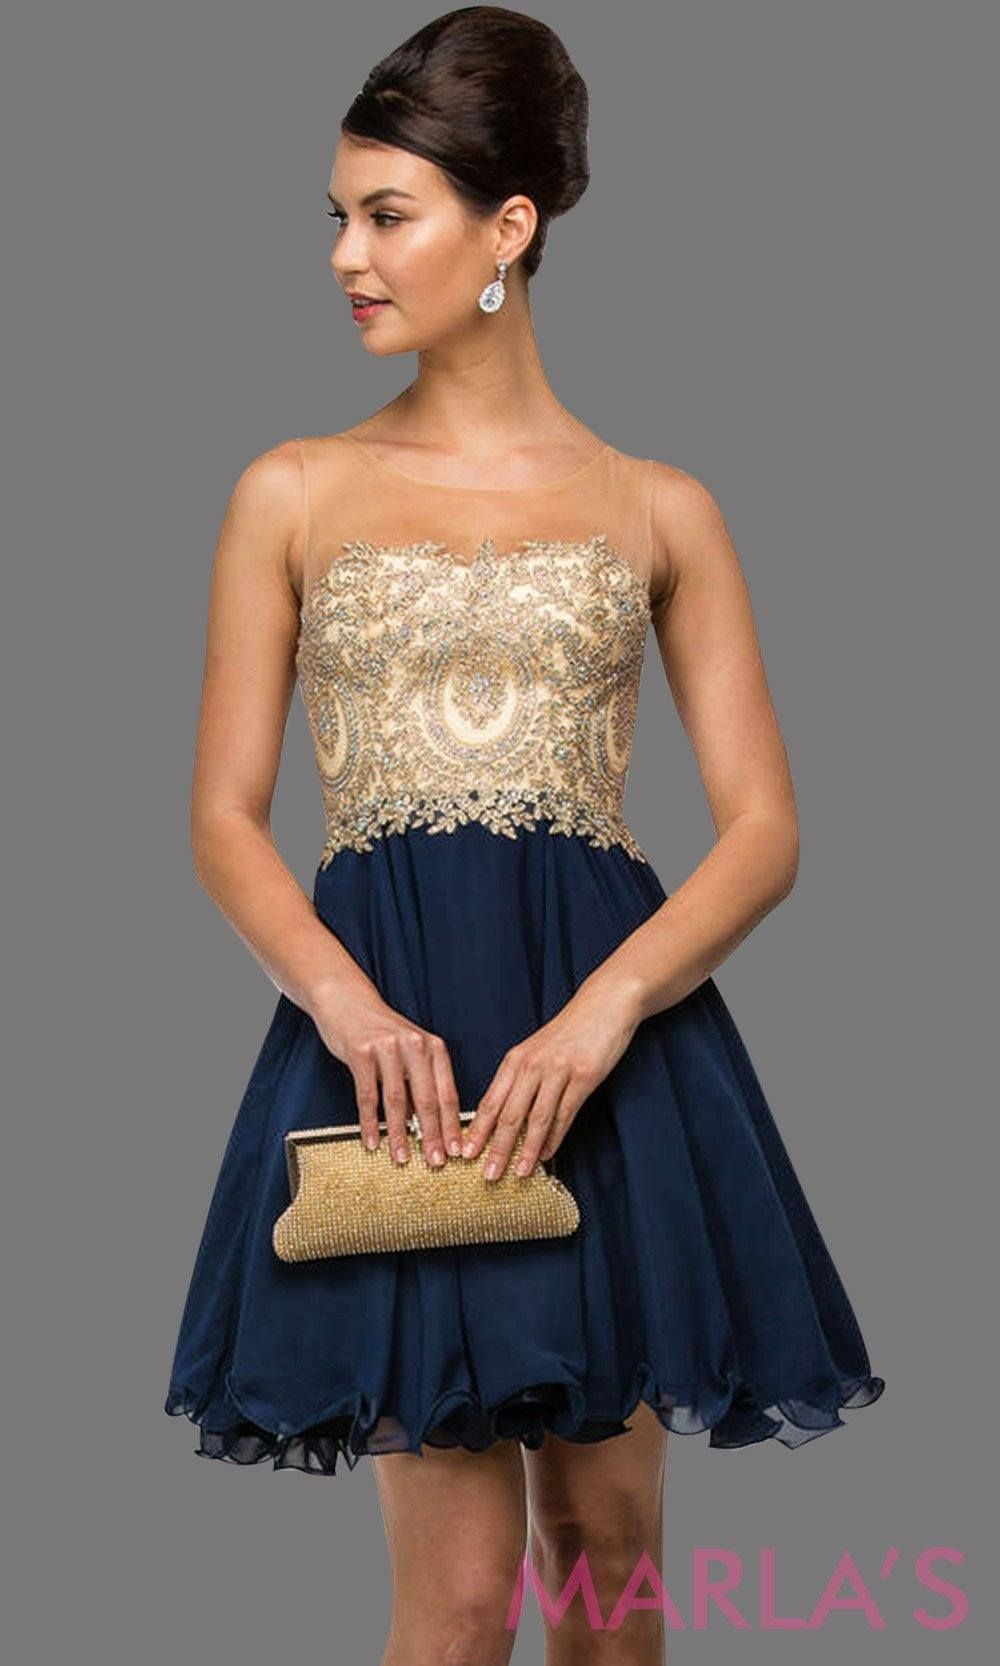 dea36fc82ce Short navy graduation dress with illusion beige bodice and flowy blue  chiffon skirt. Perfect for grade 8 grad